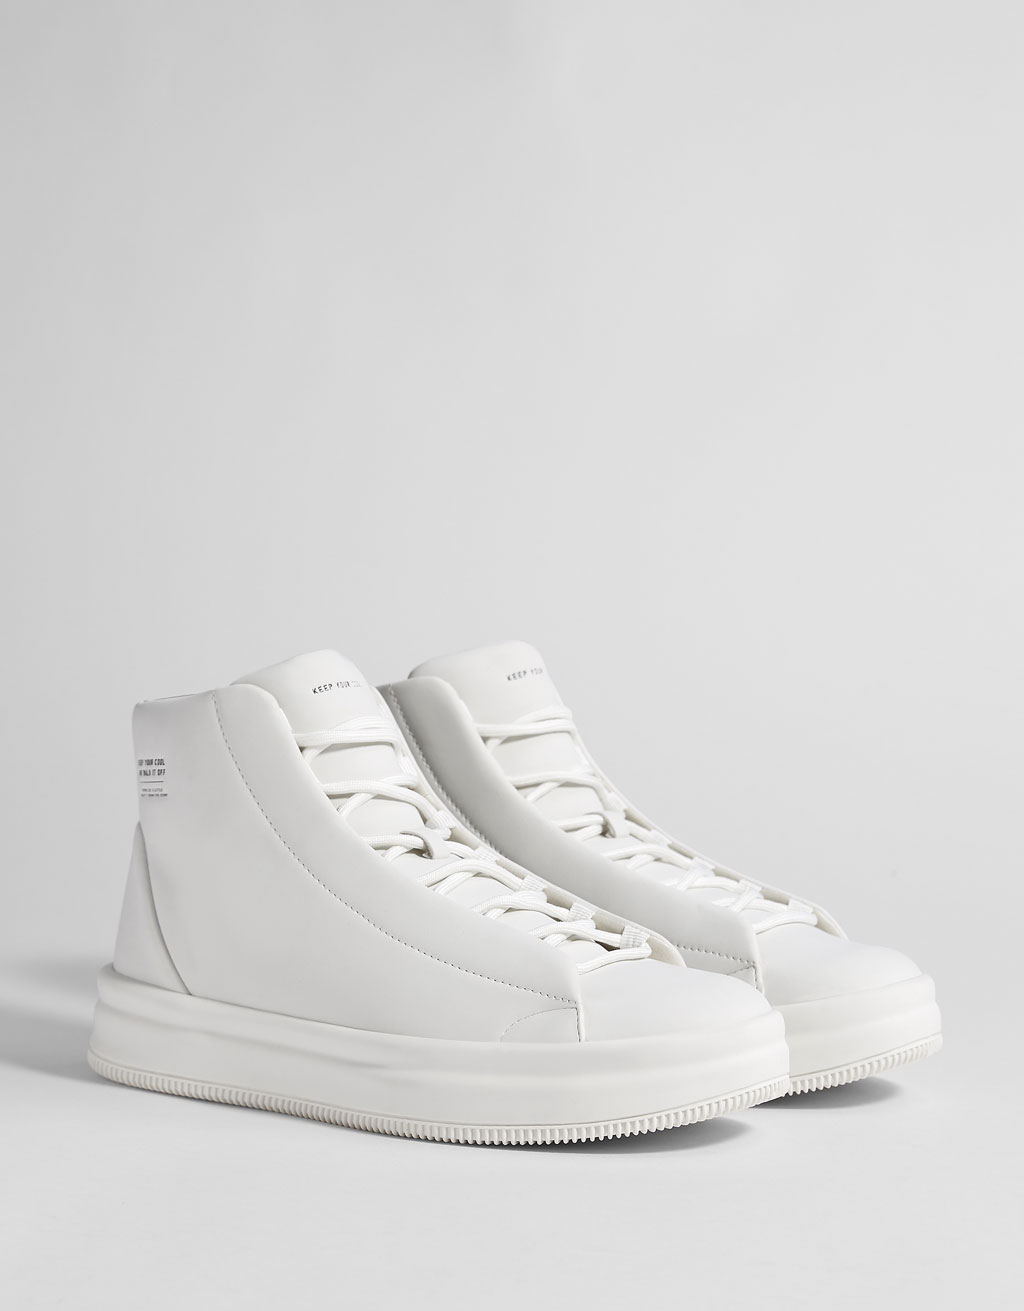 Men's white high-top trainers